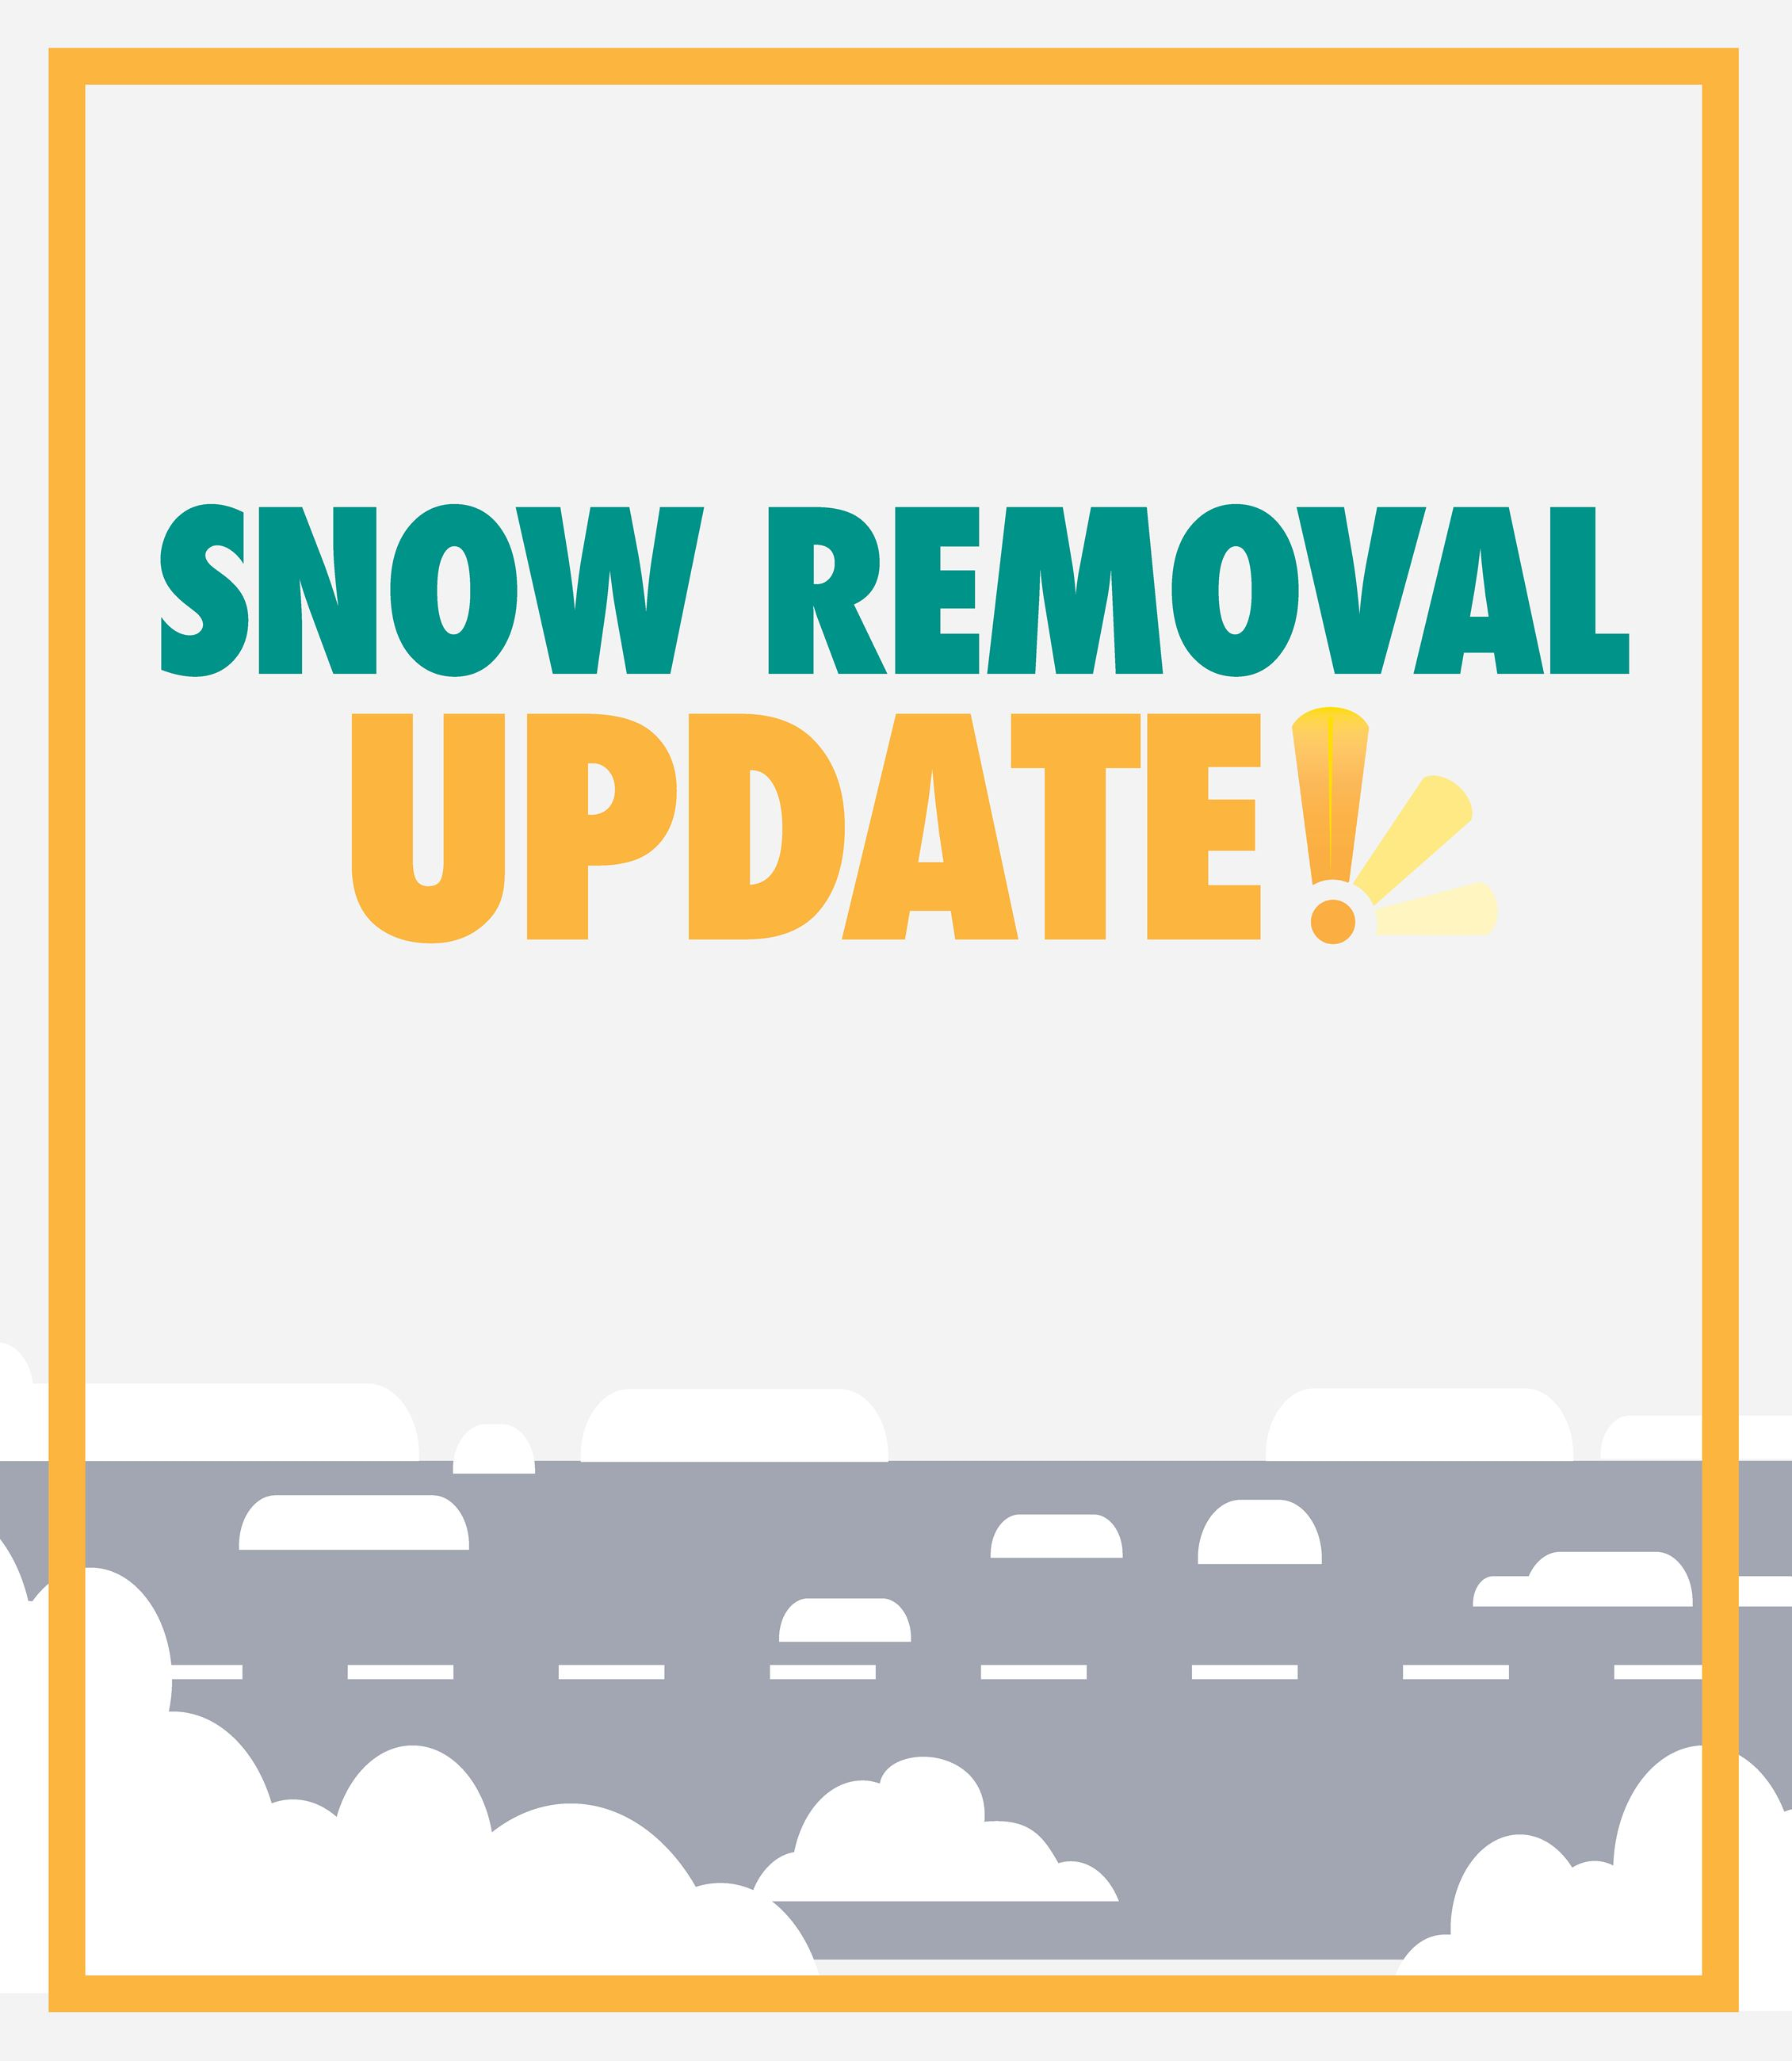 Snow Removal Update